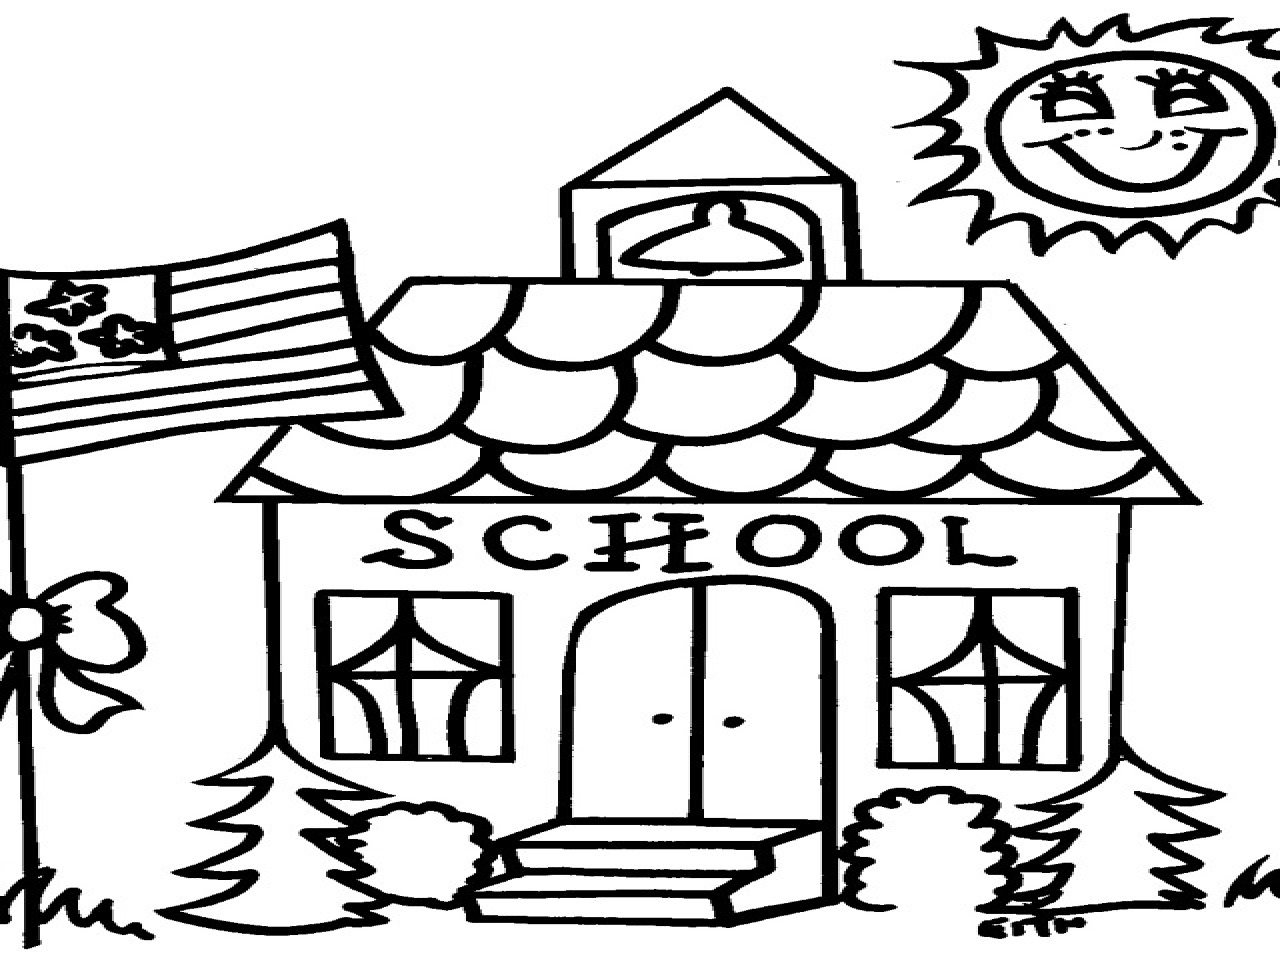 Schoolhouse Coloring Pages Printables School House Page Grig3 Gallery Of School House Coloring Pages to Print